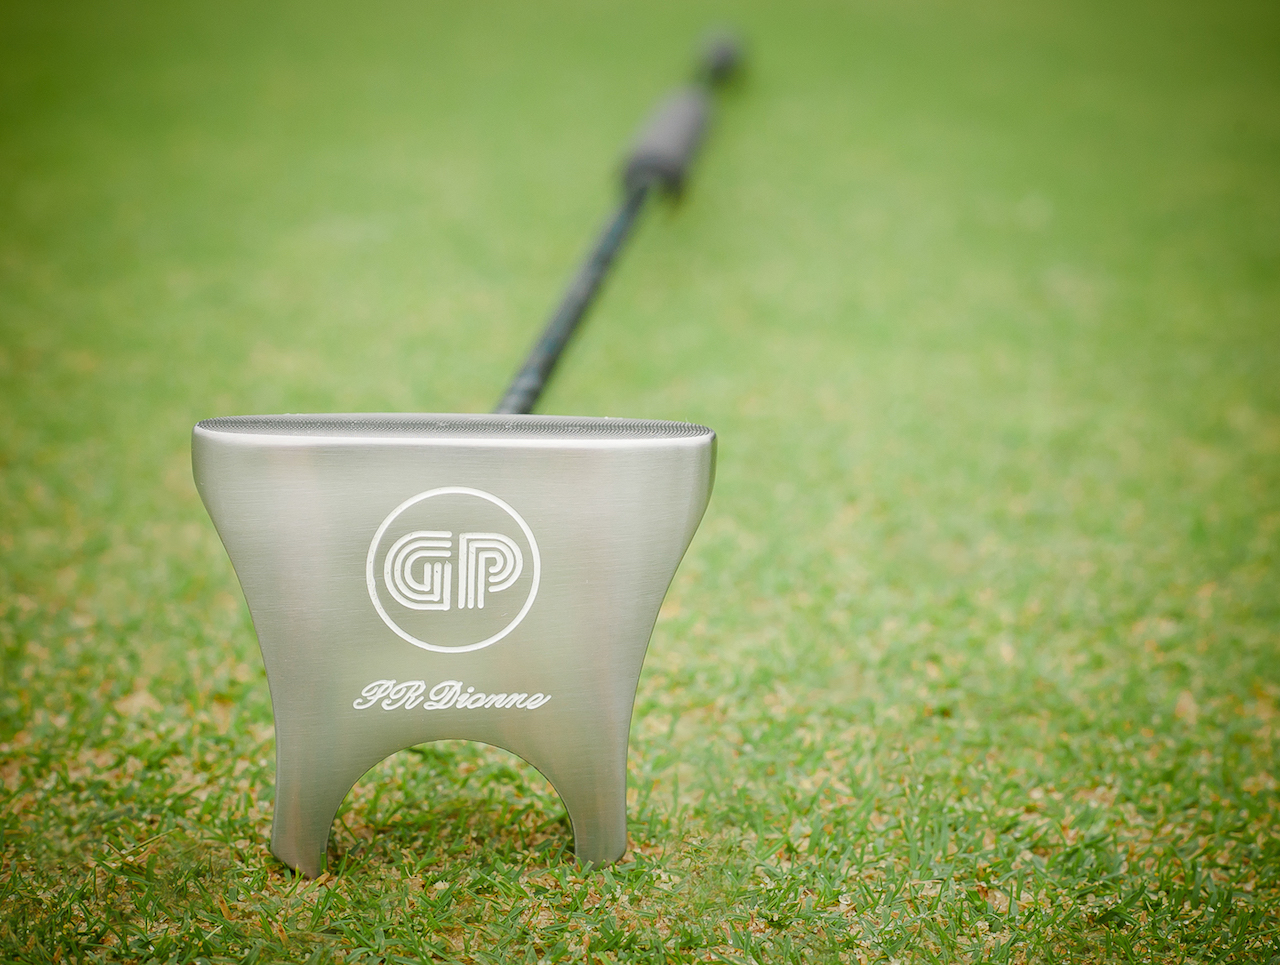 GP putter head view from the bottom